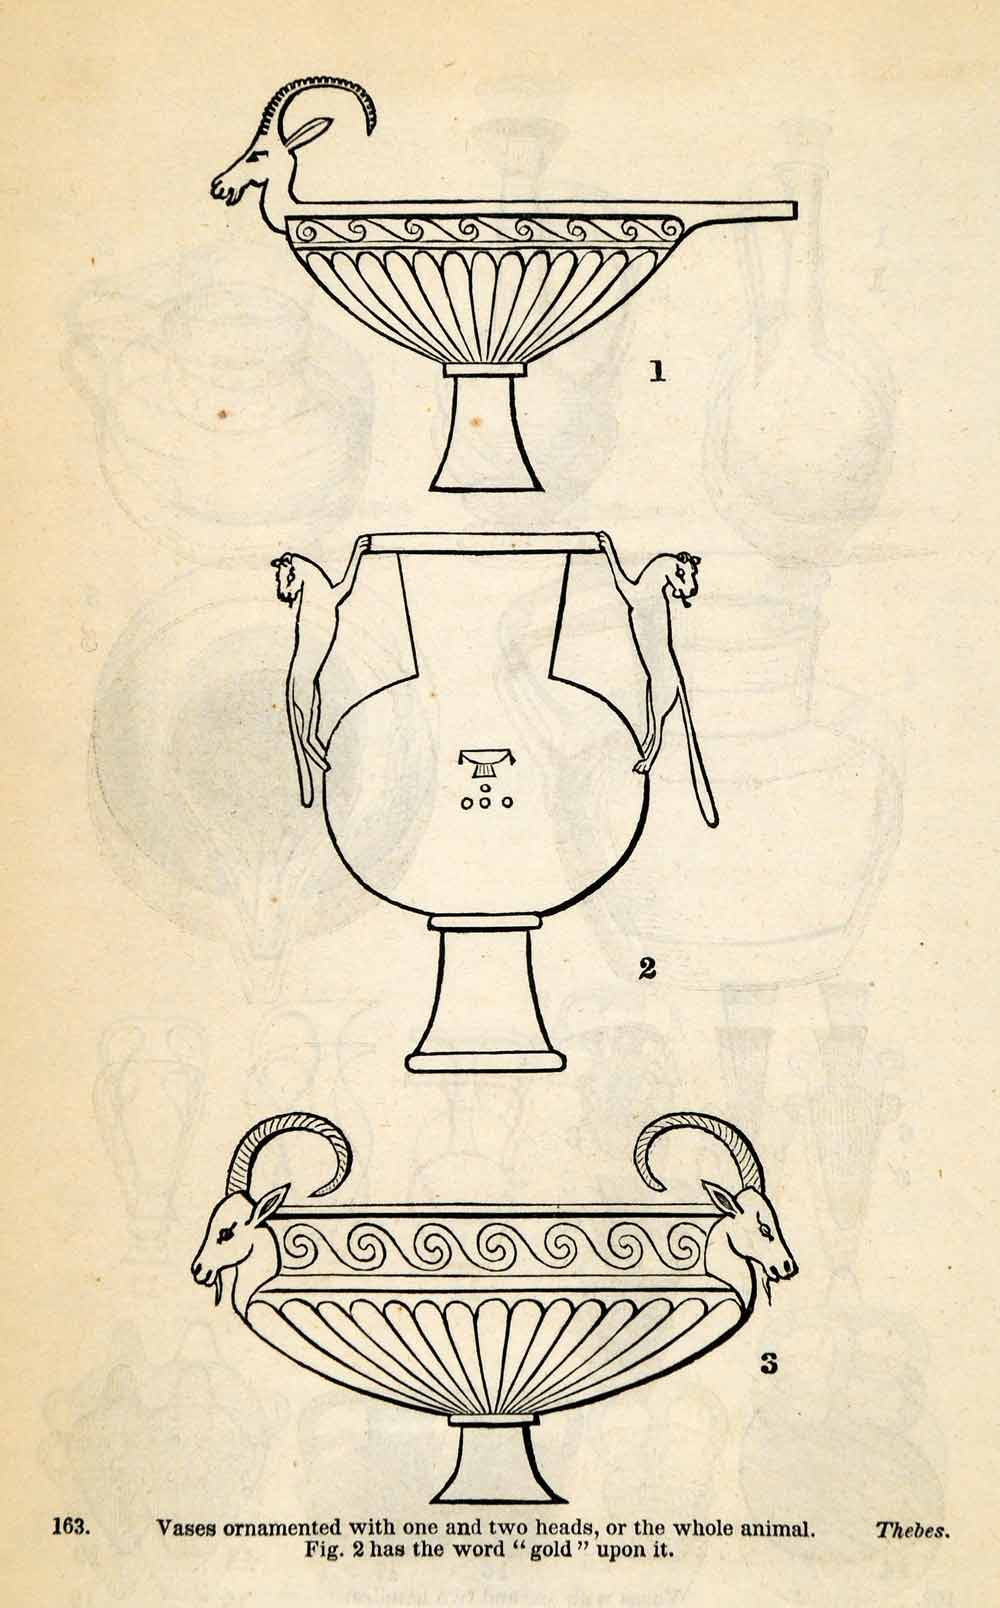 1854 Woodcut Ancient Thebes Egyptian Animal Vases Archaeological Artifacts XGP5